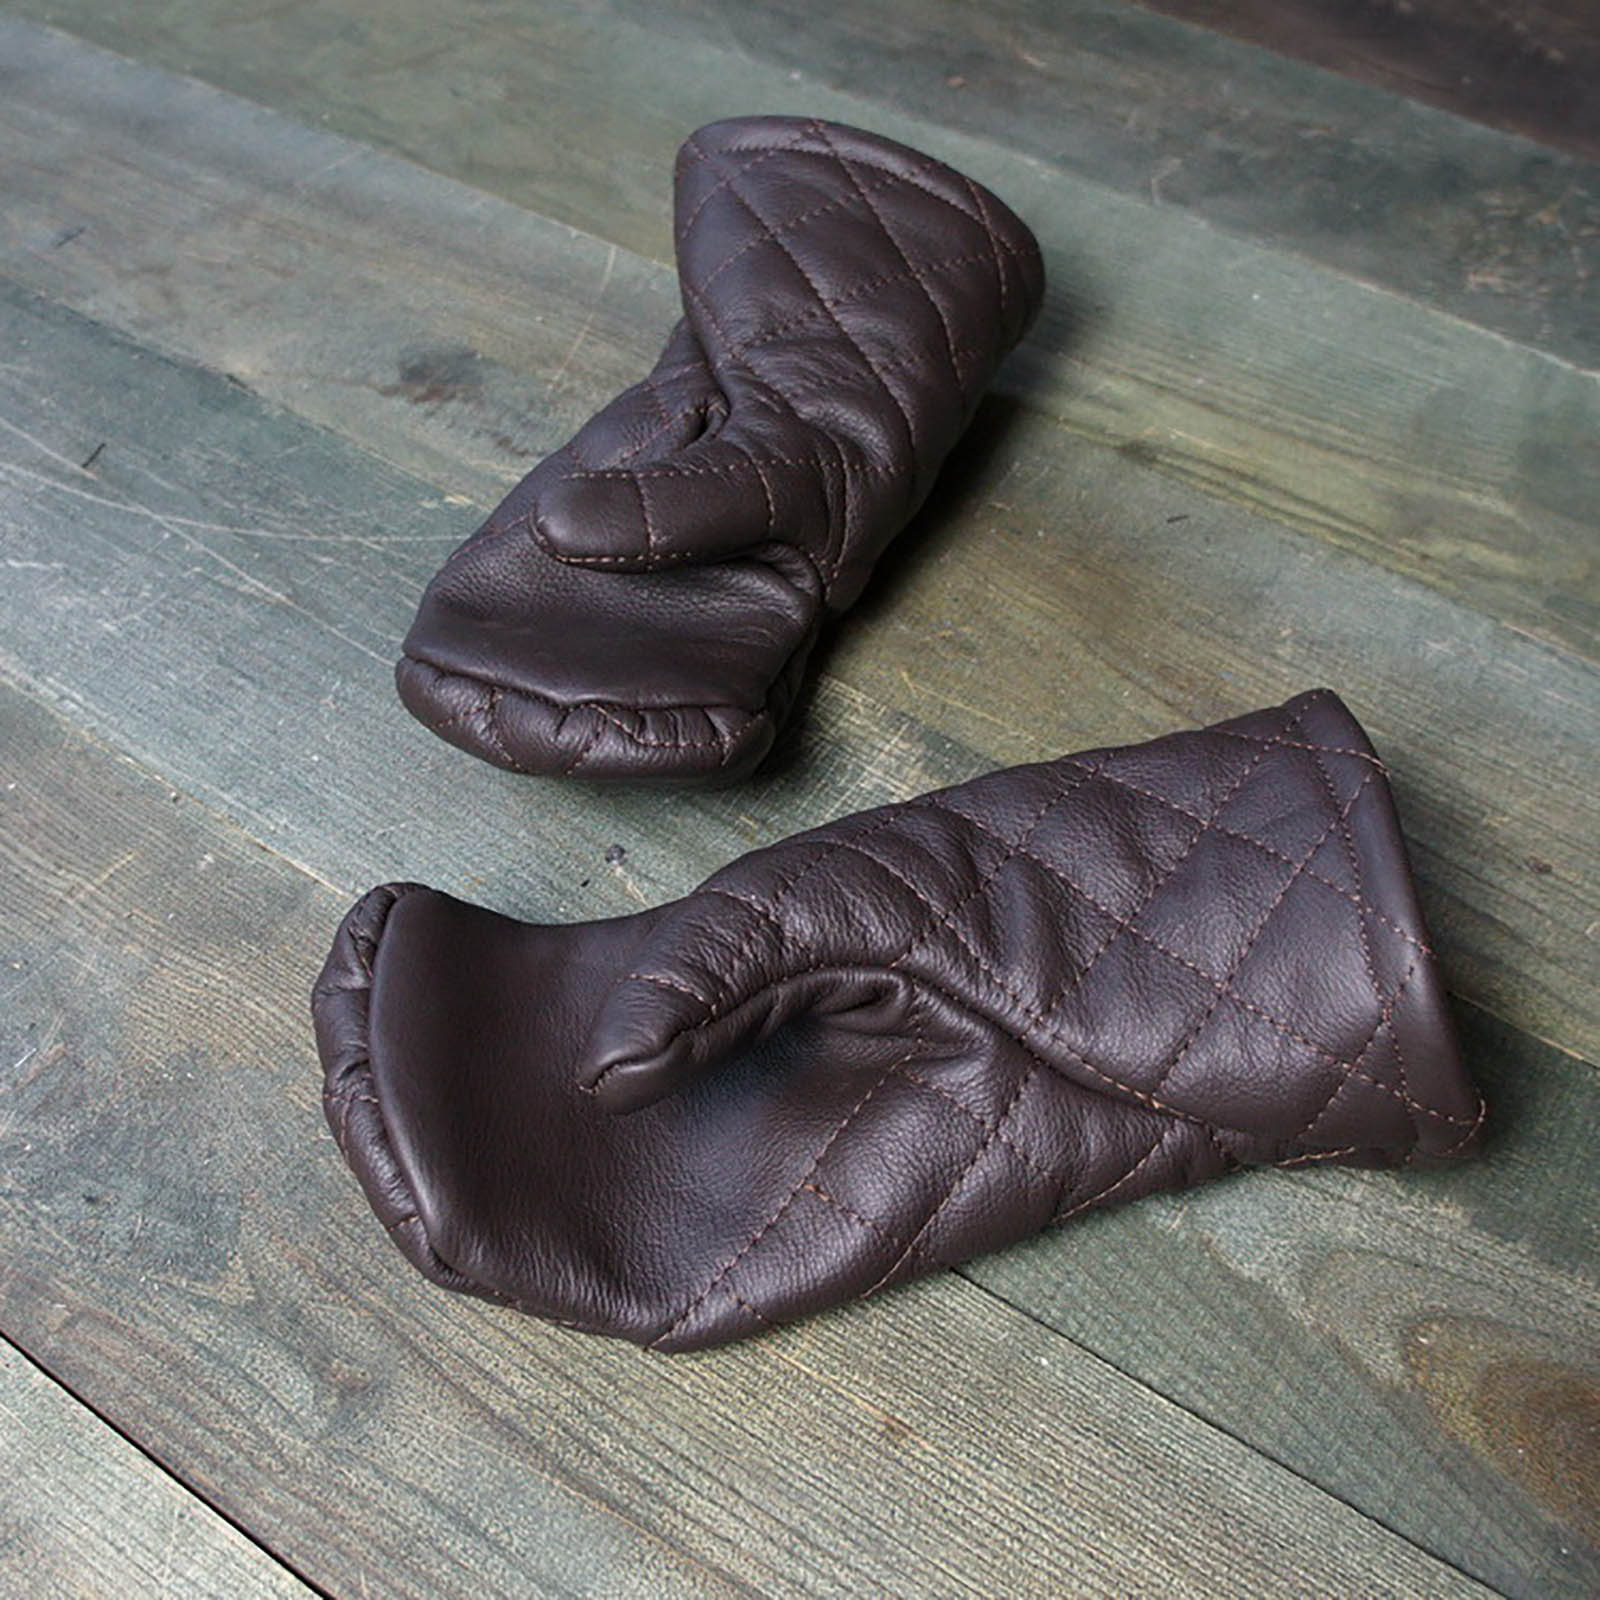 Leather mittens with diamond stitching - new item on our web-site!